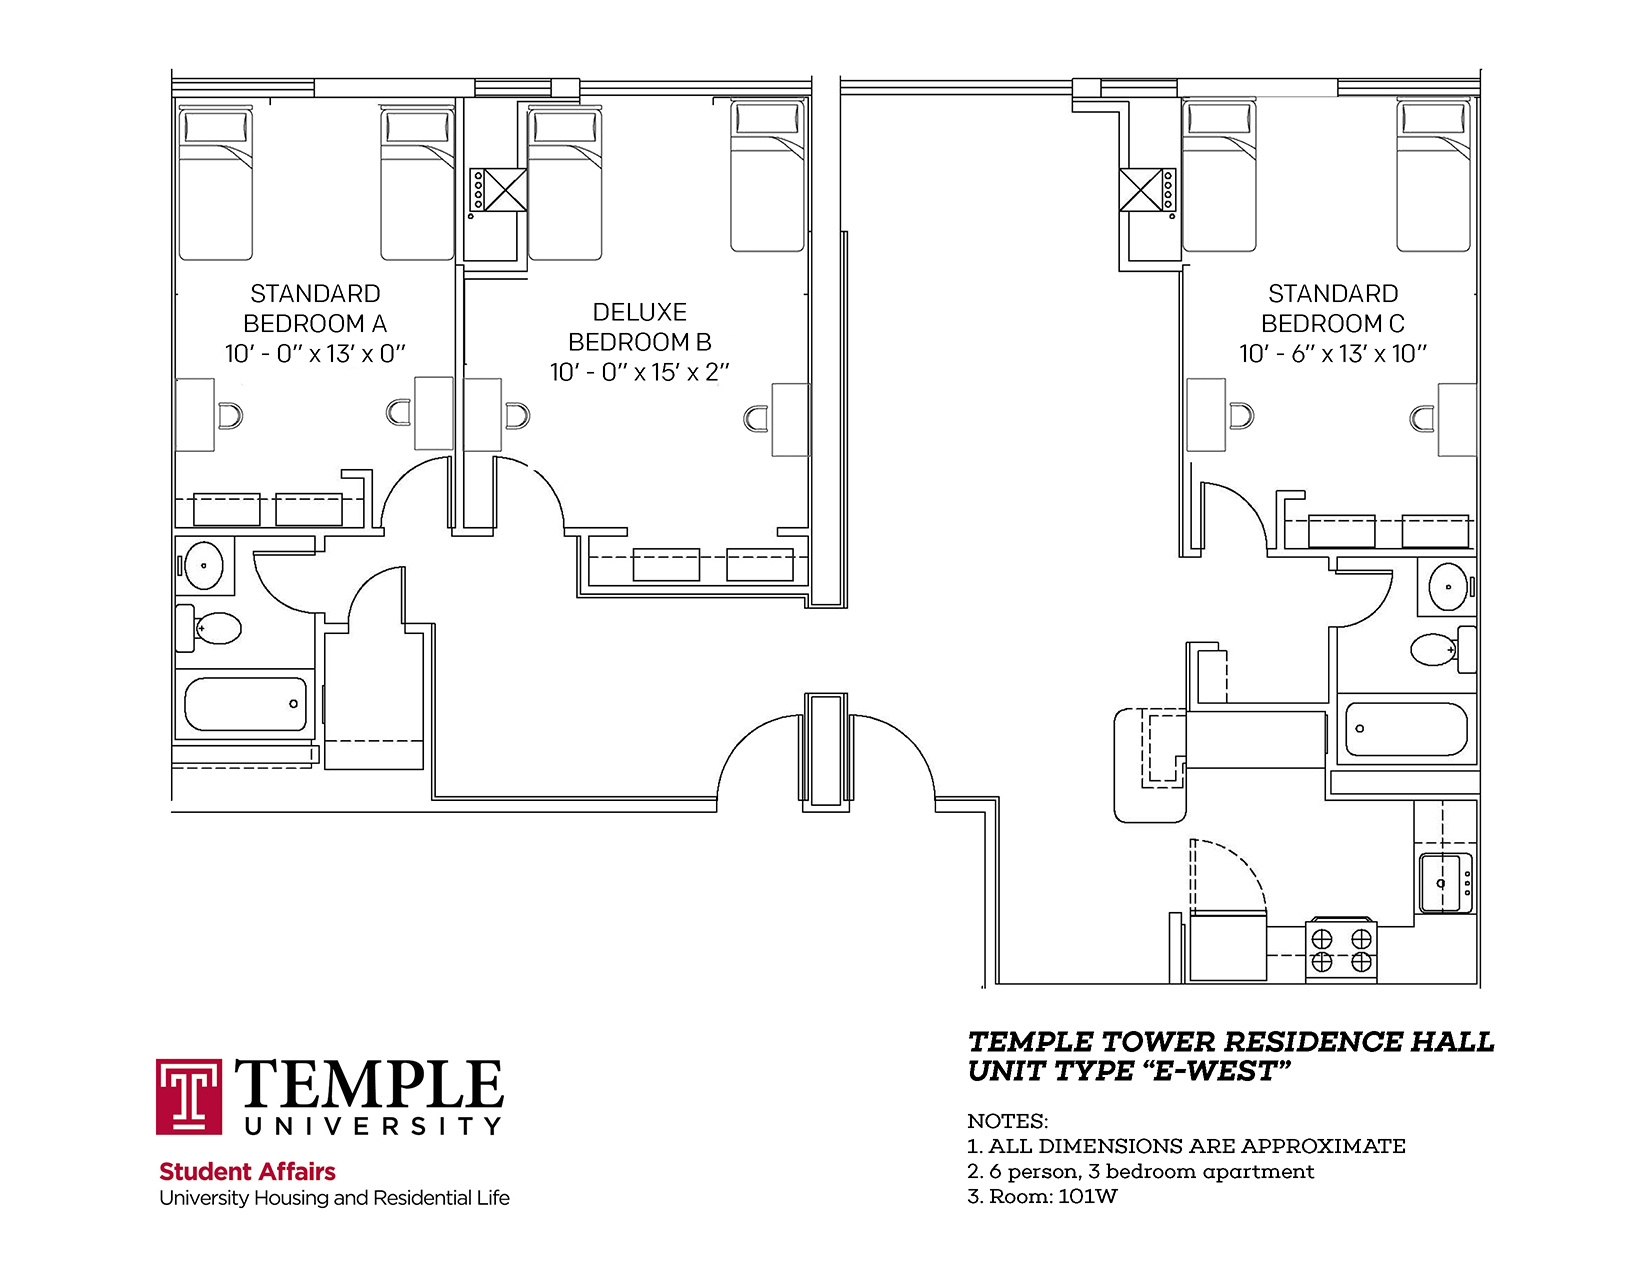 Temple Towers: Unit E West - 6 person, 3 bedroom Apartment